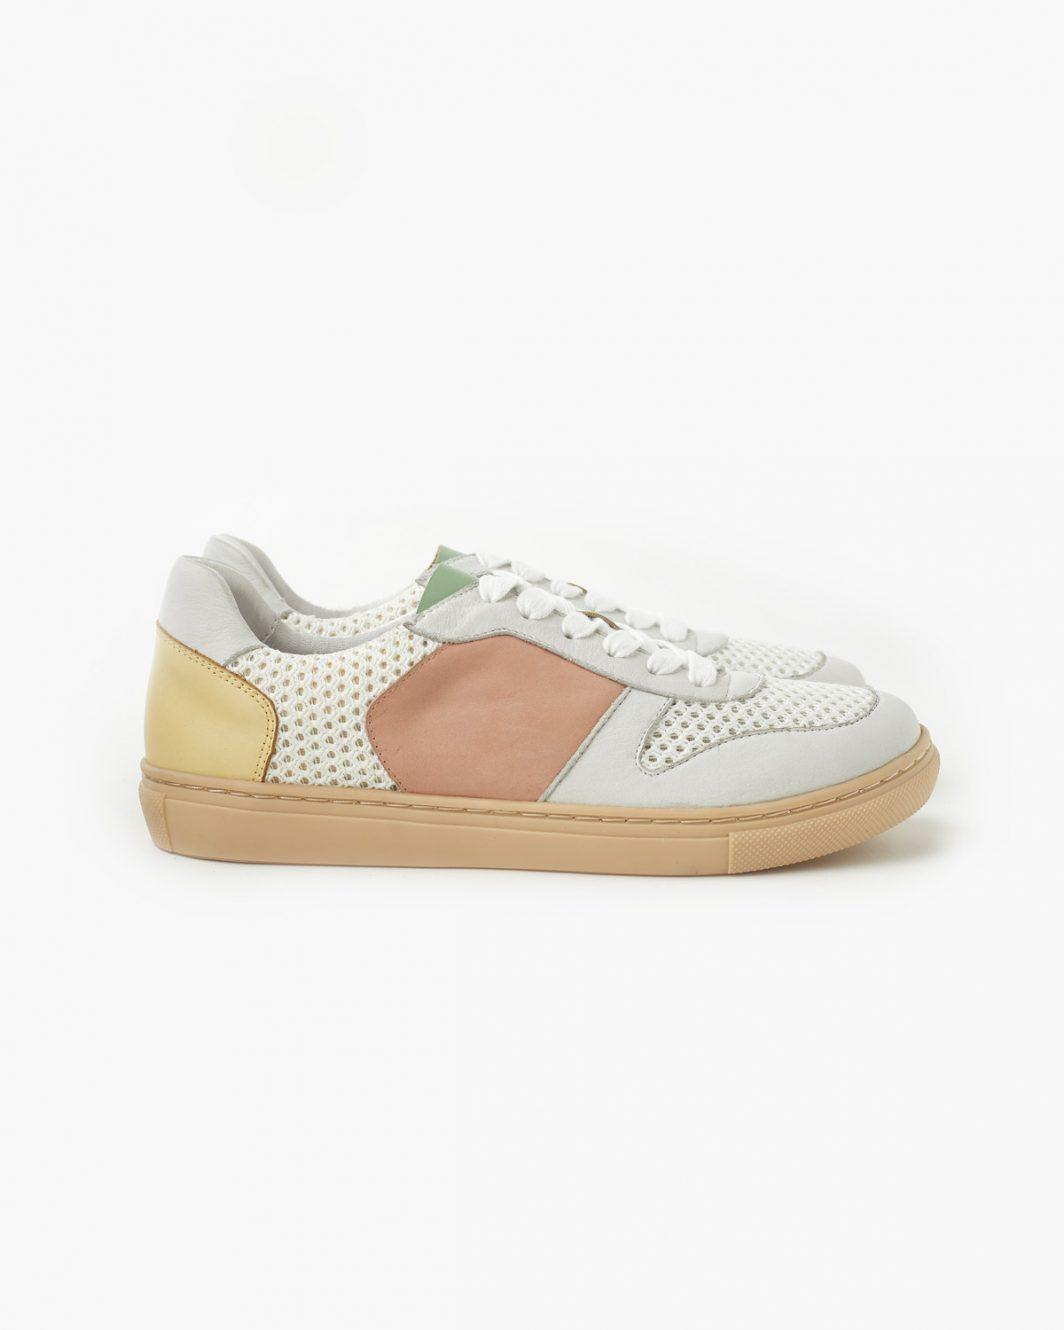 Tao Leather Sneakers - Yellow - 1